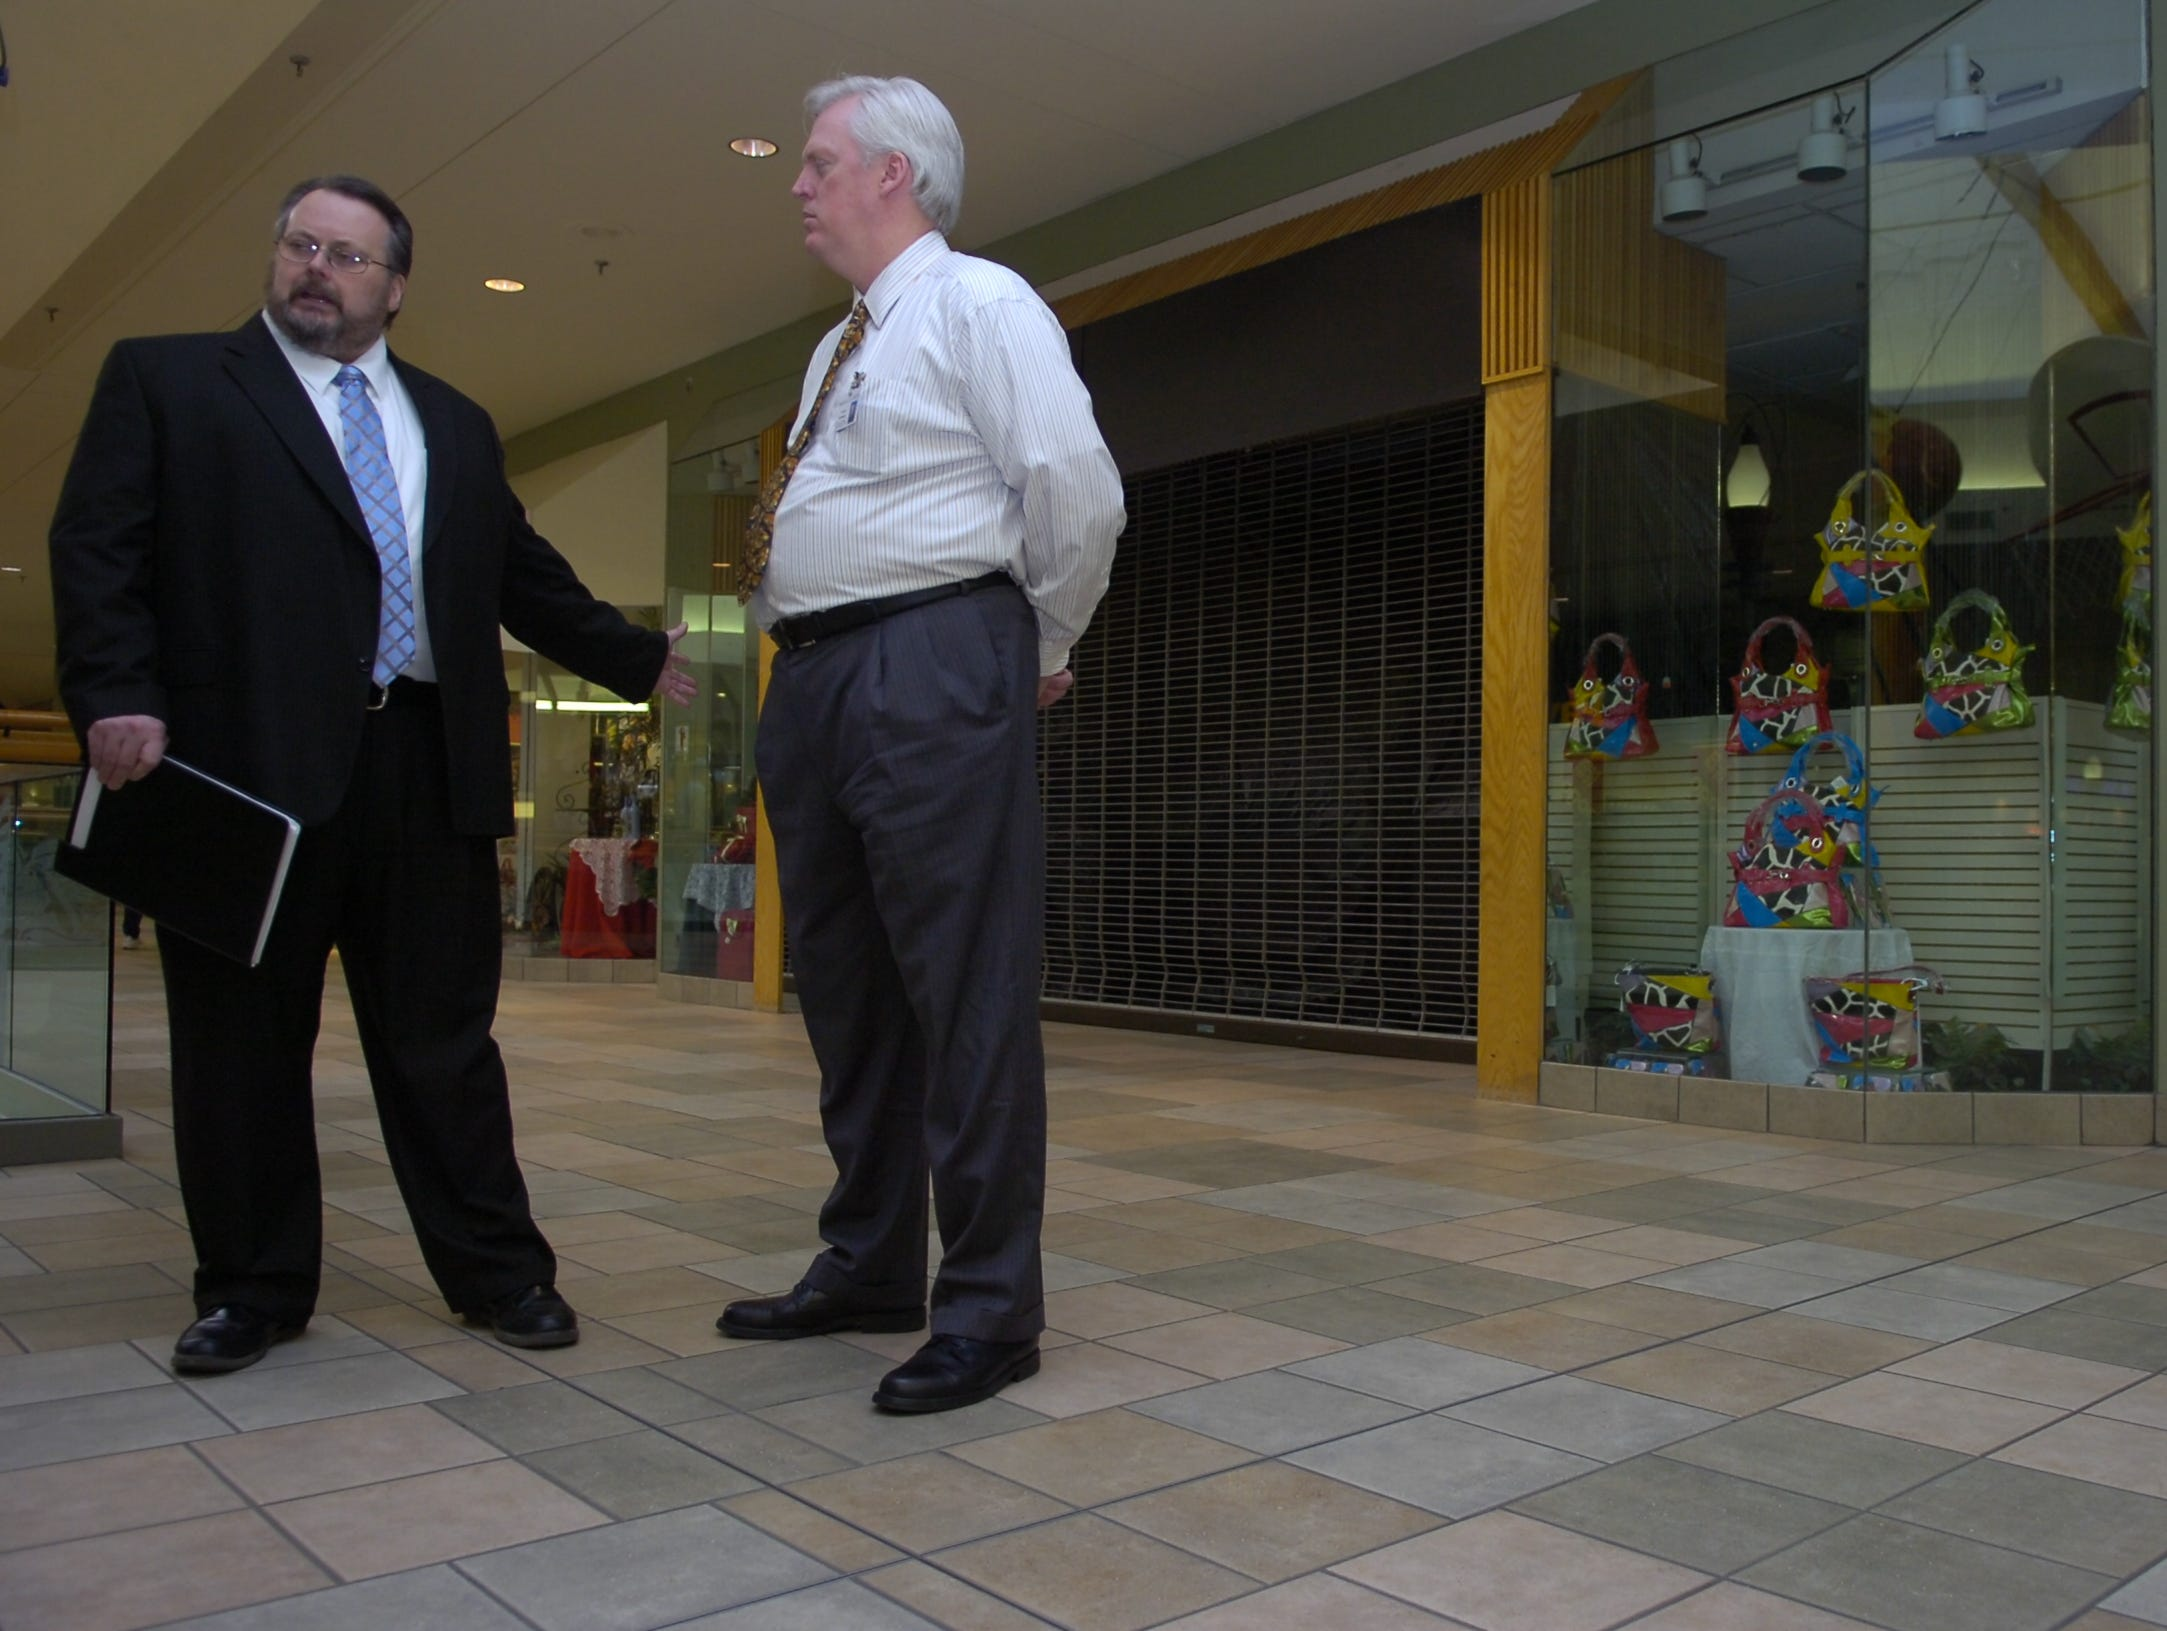 Don Lawson, left, Director of Career, Technical, and Adult Education for Knox County Schools talks with Tim Hill, Area Manager for West Town and Knoxville Center Malls, Friday, Jan. 22, 2010 at Knoxville Center Mall. A 6,400 square-foot space at Knoxville Center Mall is proposed for a new school to give roughly 280 Knox County students an alternative education option.